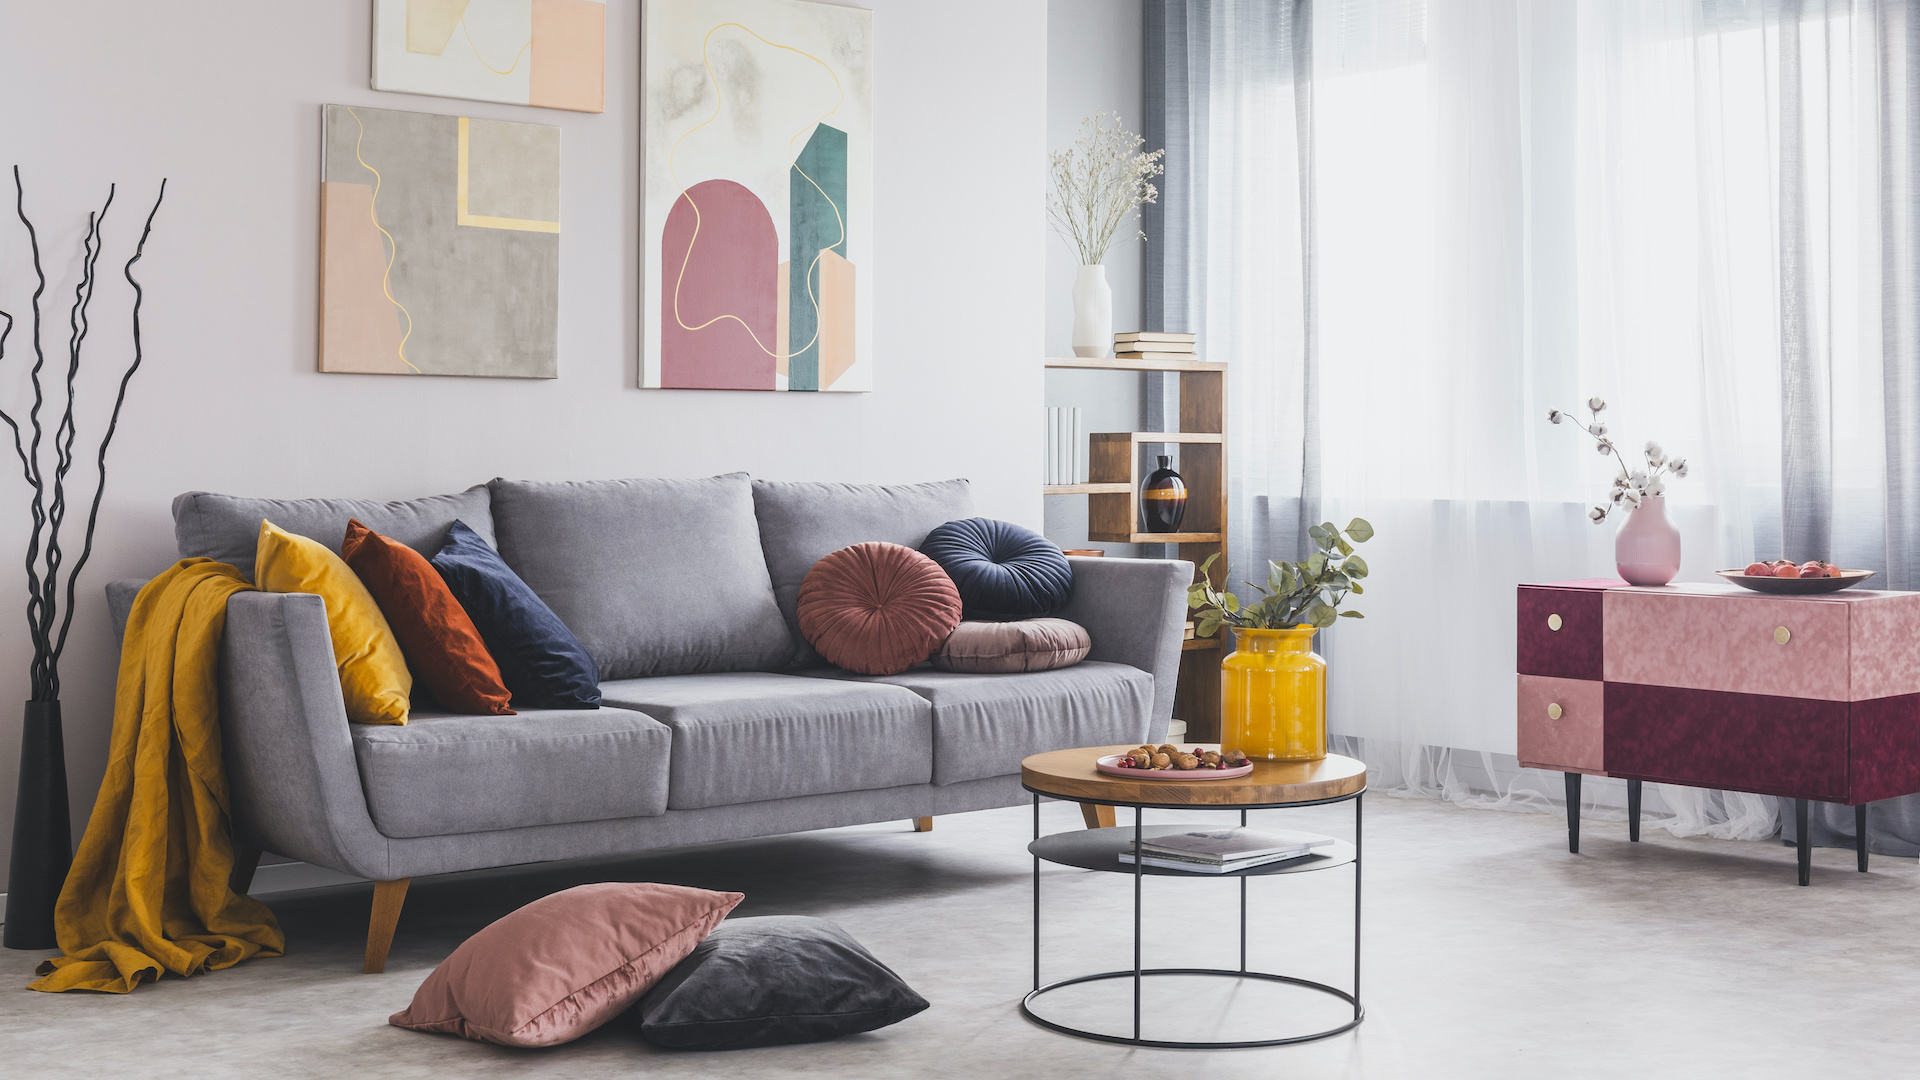 I'm Using These Labor Day Weekend Sales As An Excuse To Redecorate My Entire Apartment